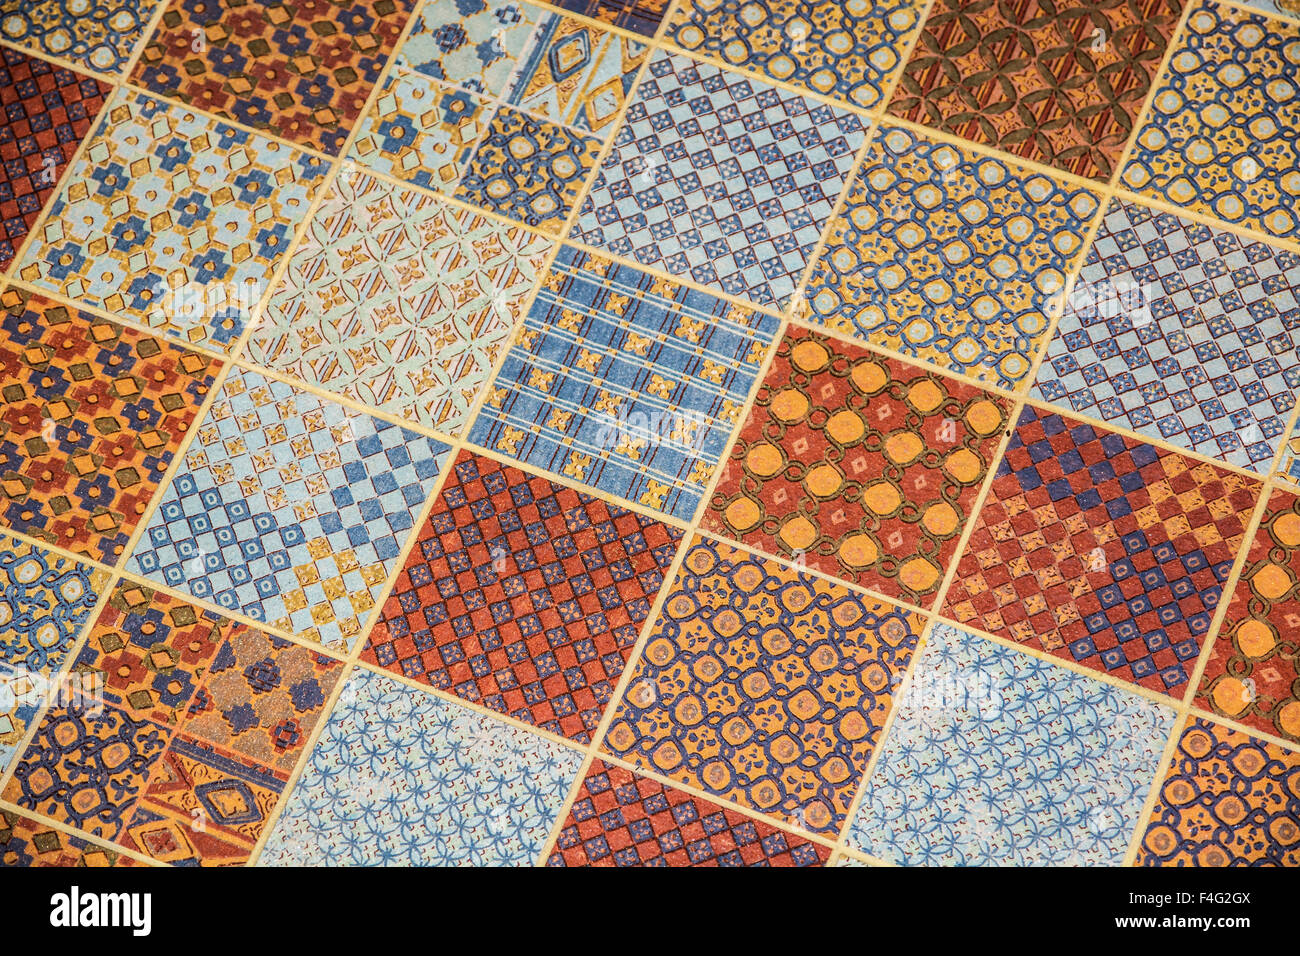 Linoleum floor stock photos linoleum floor stock images alamy tiled or linoleum floor covering with repeating square pattern each square with smaller shapes dailygadgetfo Image collections